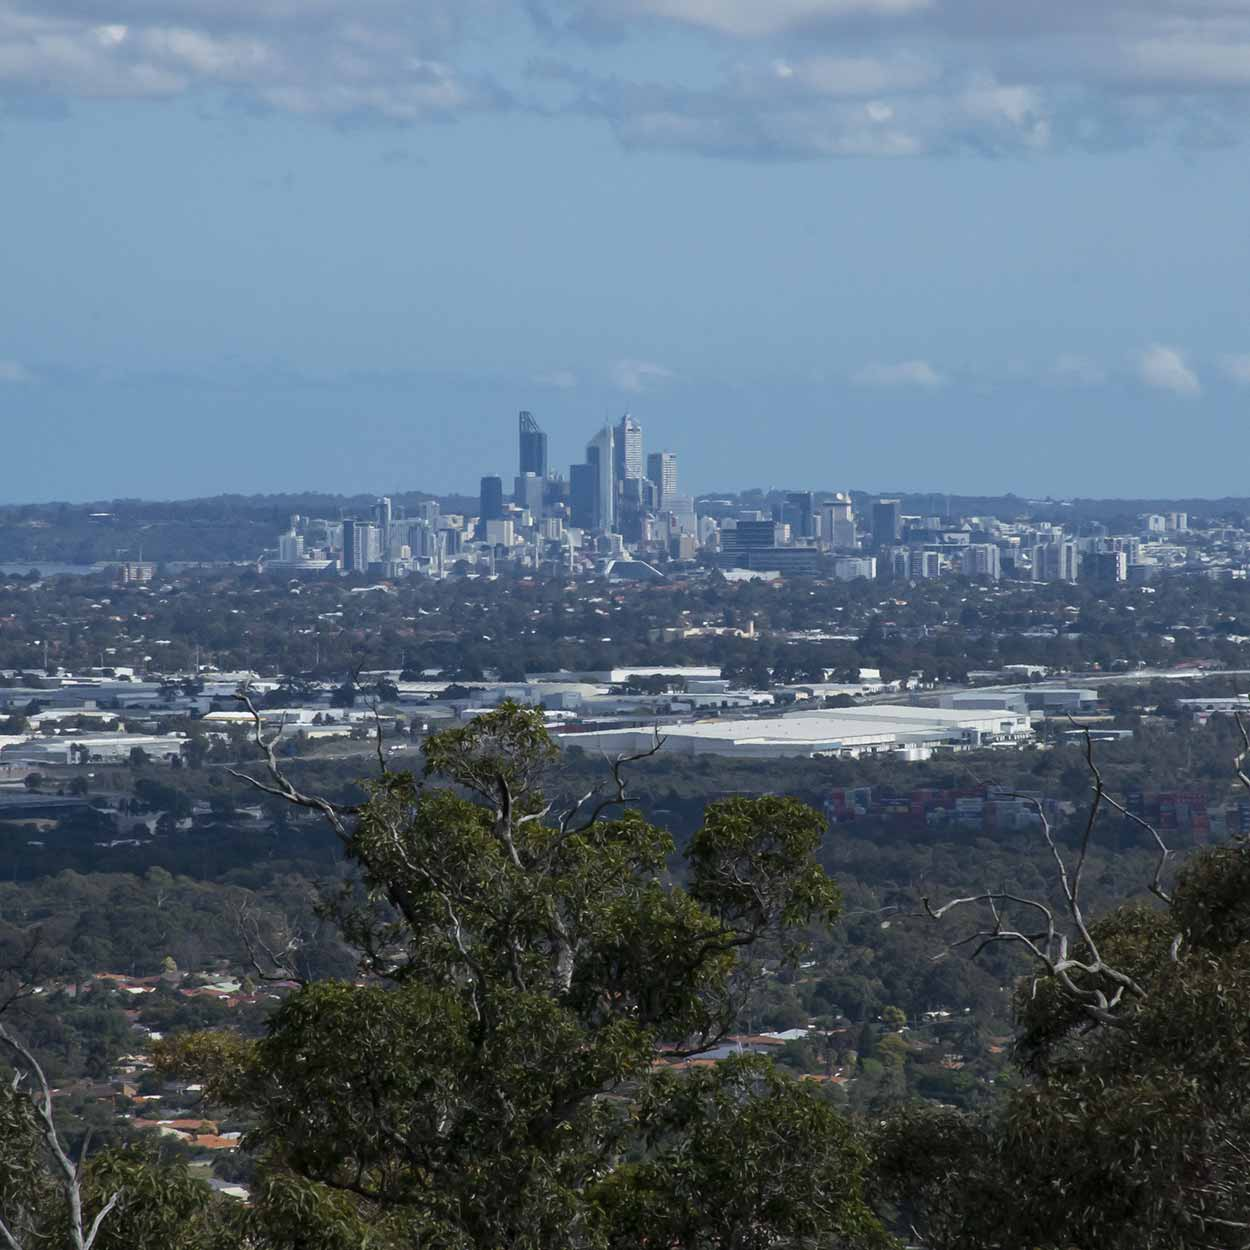 City views from the southern section of the Lewis Road Walk, Mundy Regional Park, Perth, Western Australia